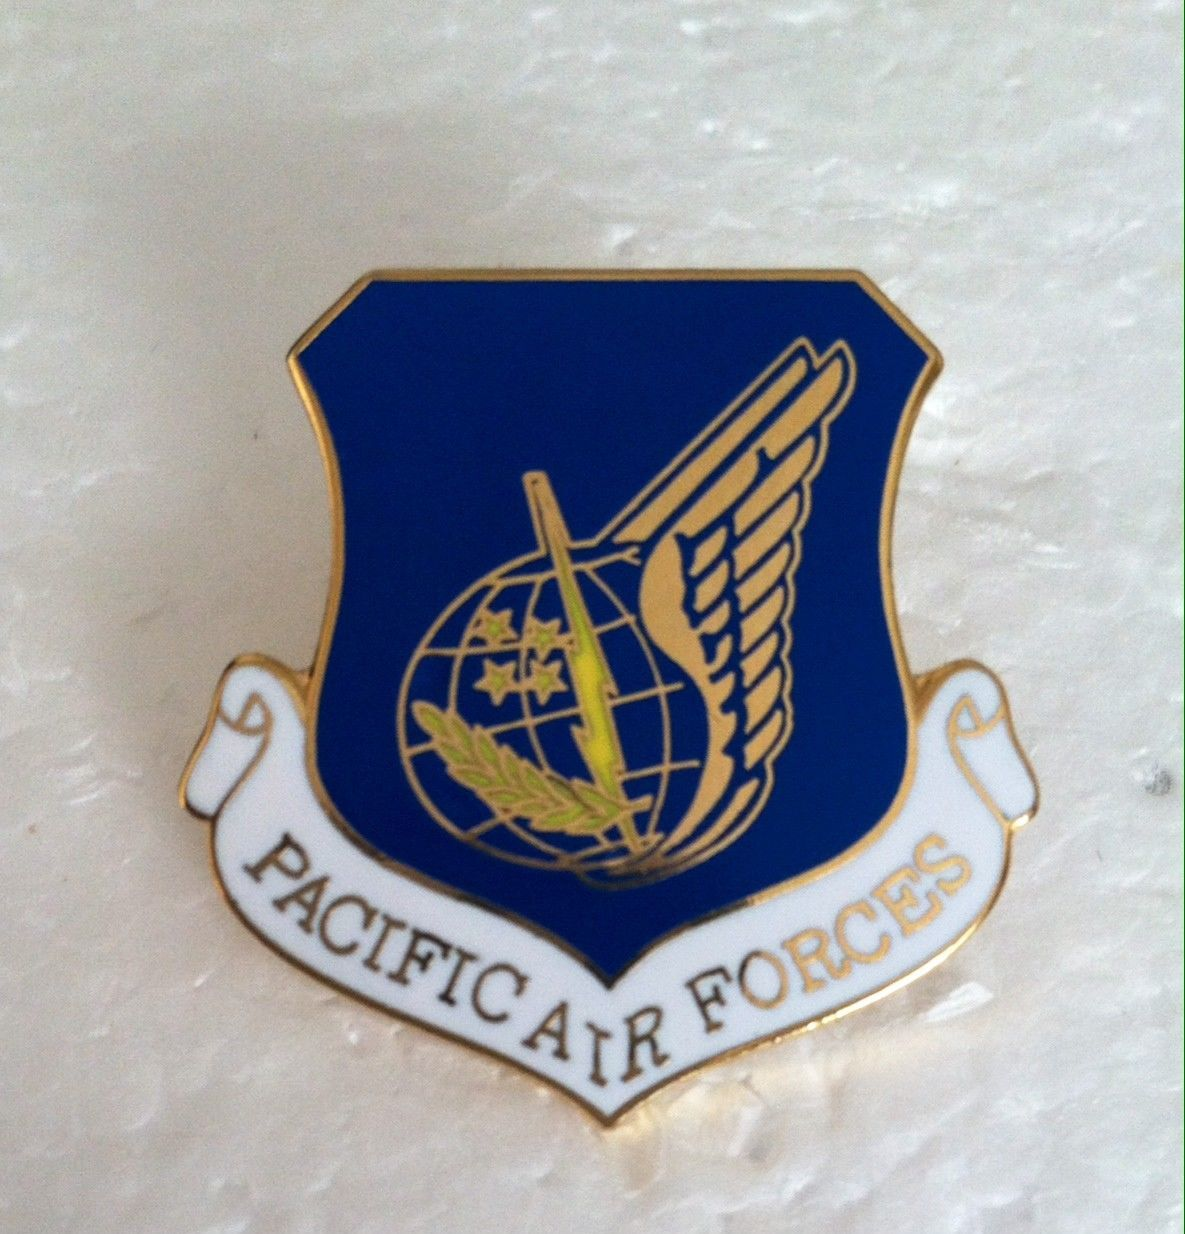 PACIFIC AIR FORCES USAF AIR FORCE SHIELD LAPEL PIN BADGE 1